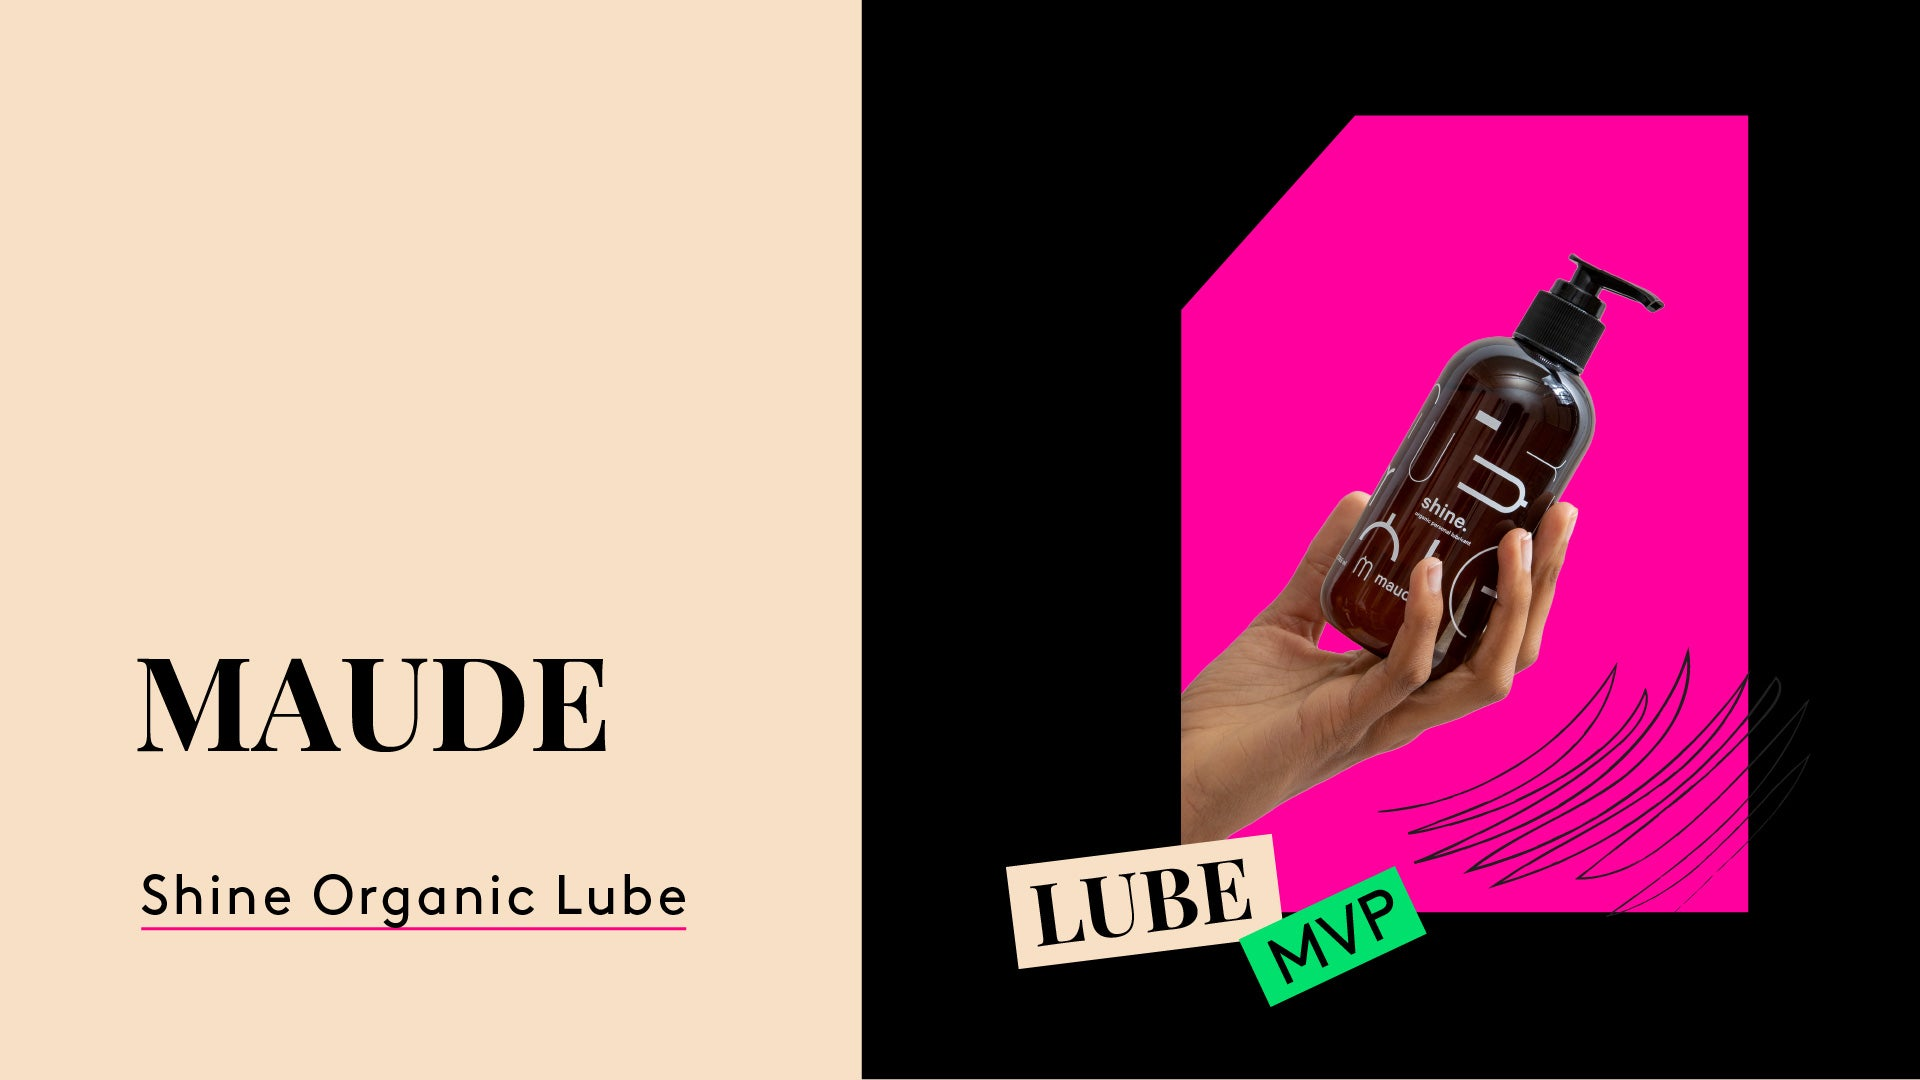 Sexual Wellness MVP. This is a photo of Maude organic lube.